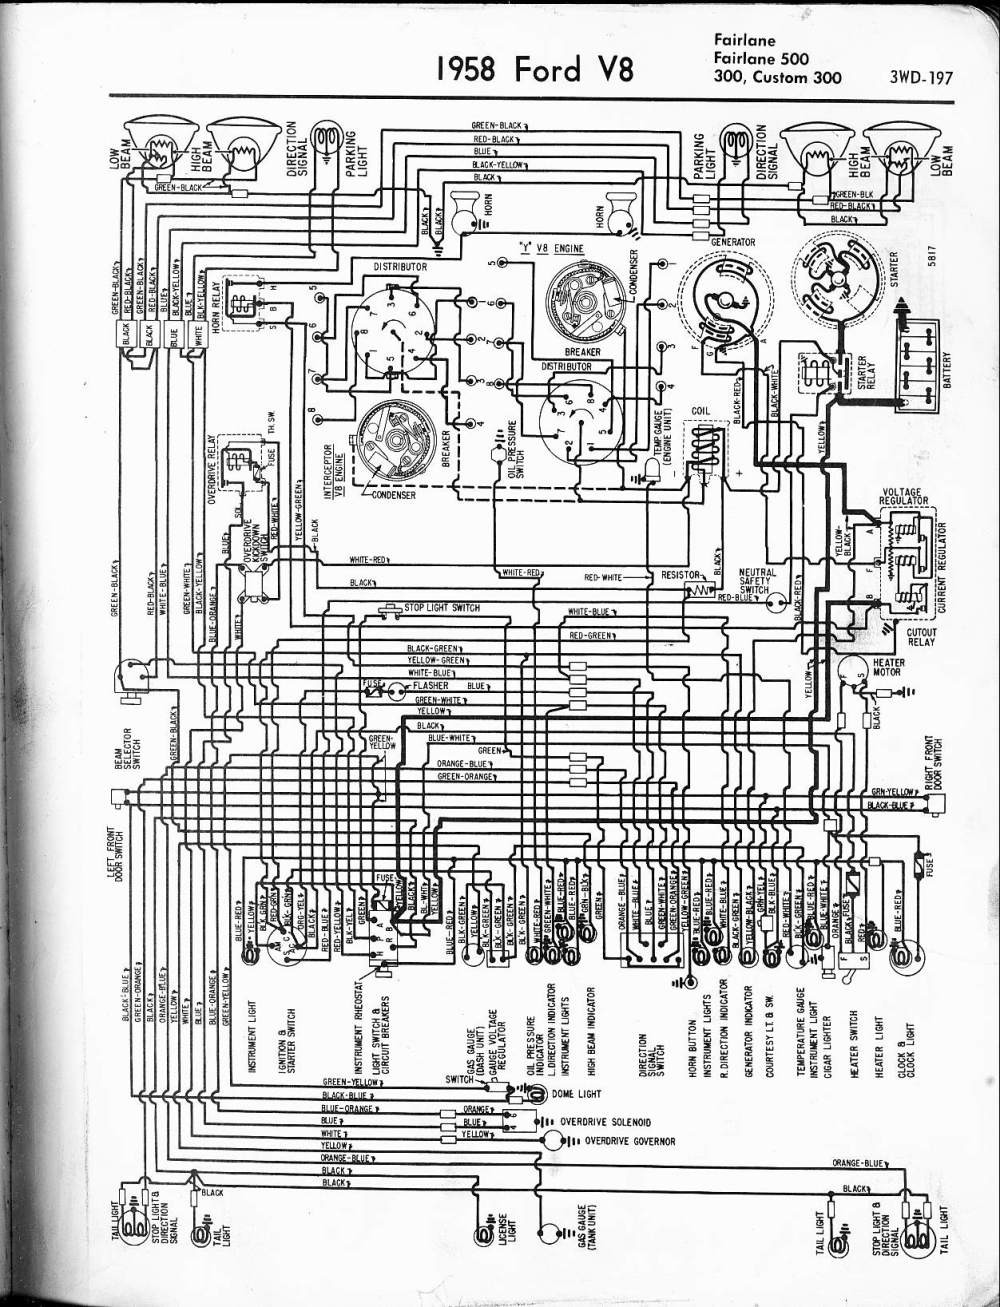 medium resolution of 57 65 ford wiring diagrams 1965 corvette wiring schematic 1958 v8 fairlane 500 300